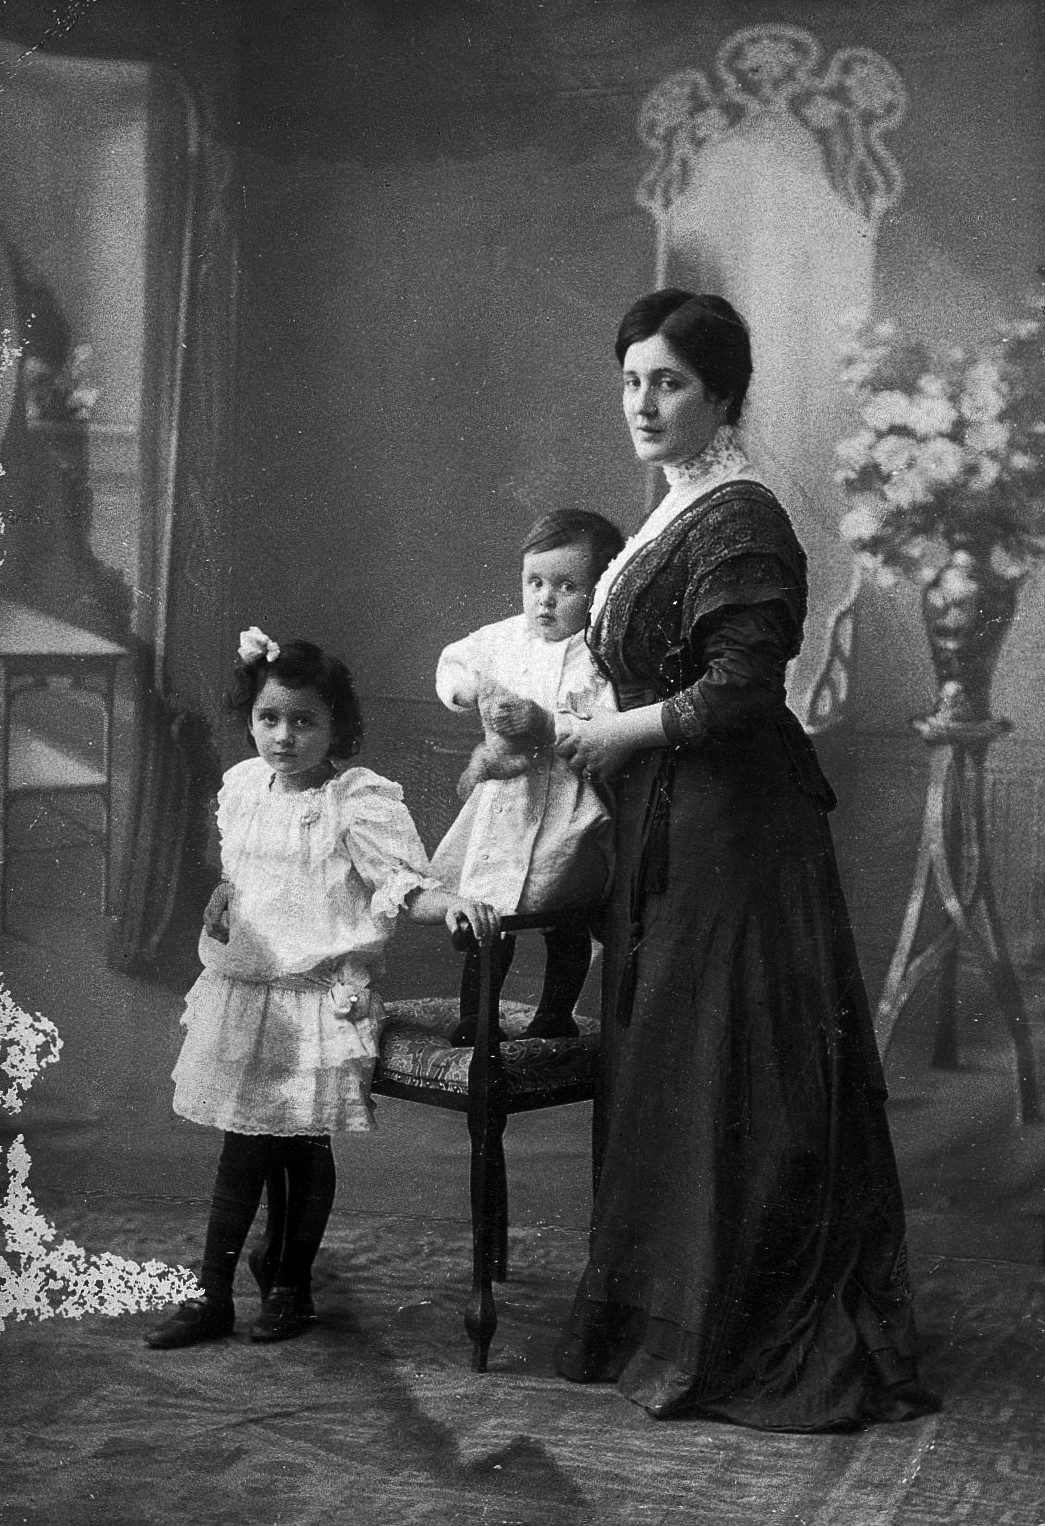 Photograph of Melanie Klein with her children Hans and Melitta, around 1908